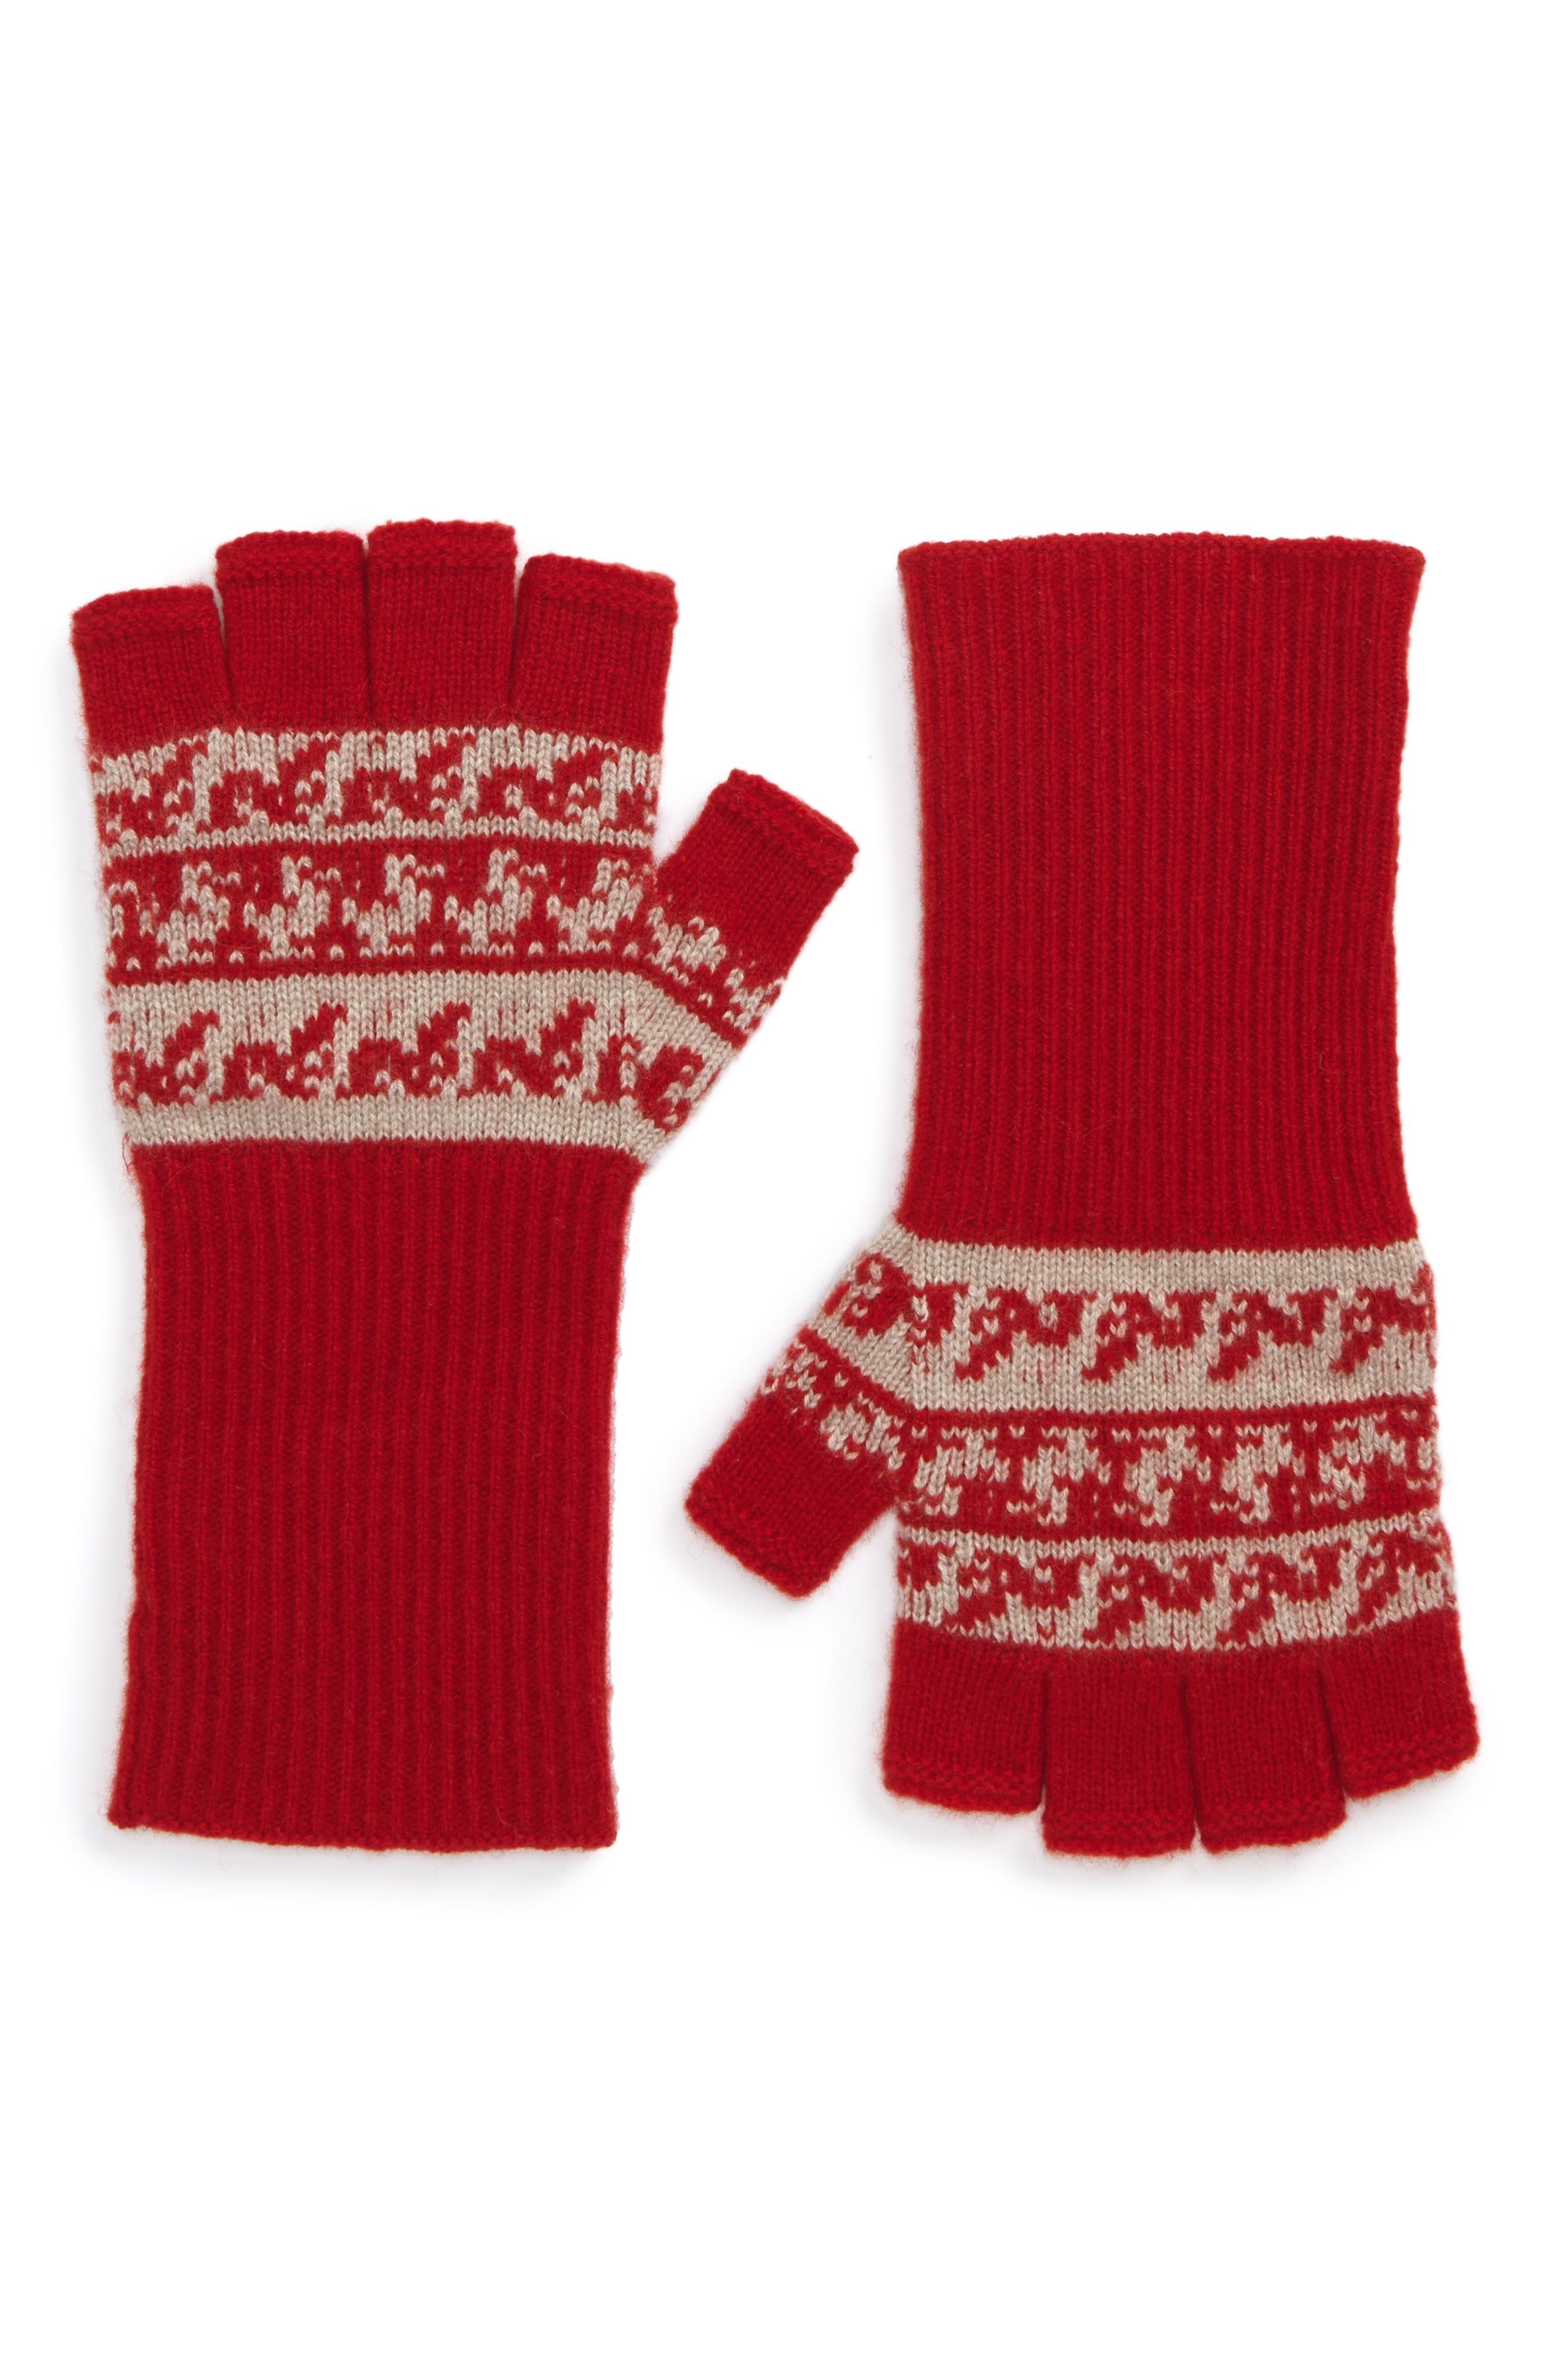 Fair Isle Cashmere & Wool Fingerless Gloves,                             Main thumbnail 1, color,                             Military Red